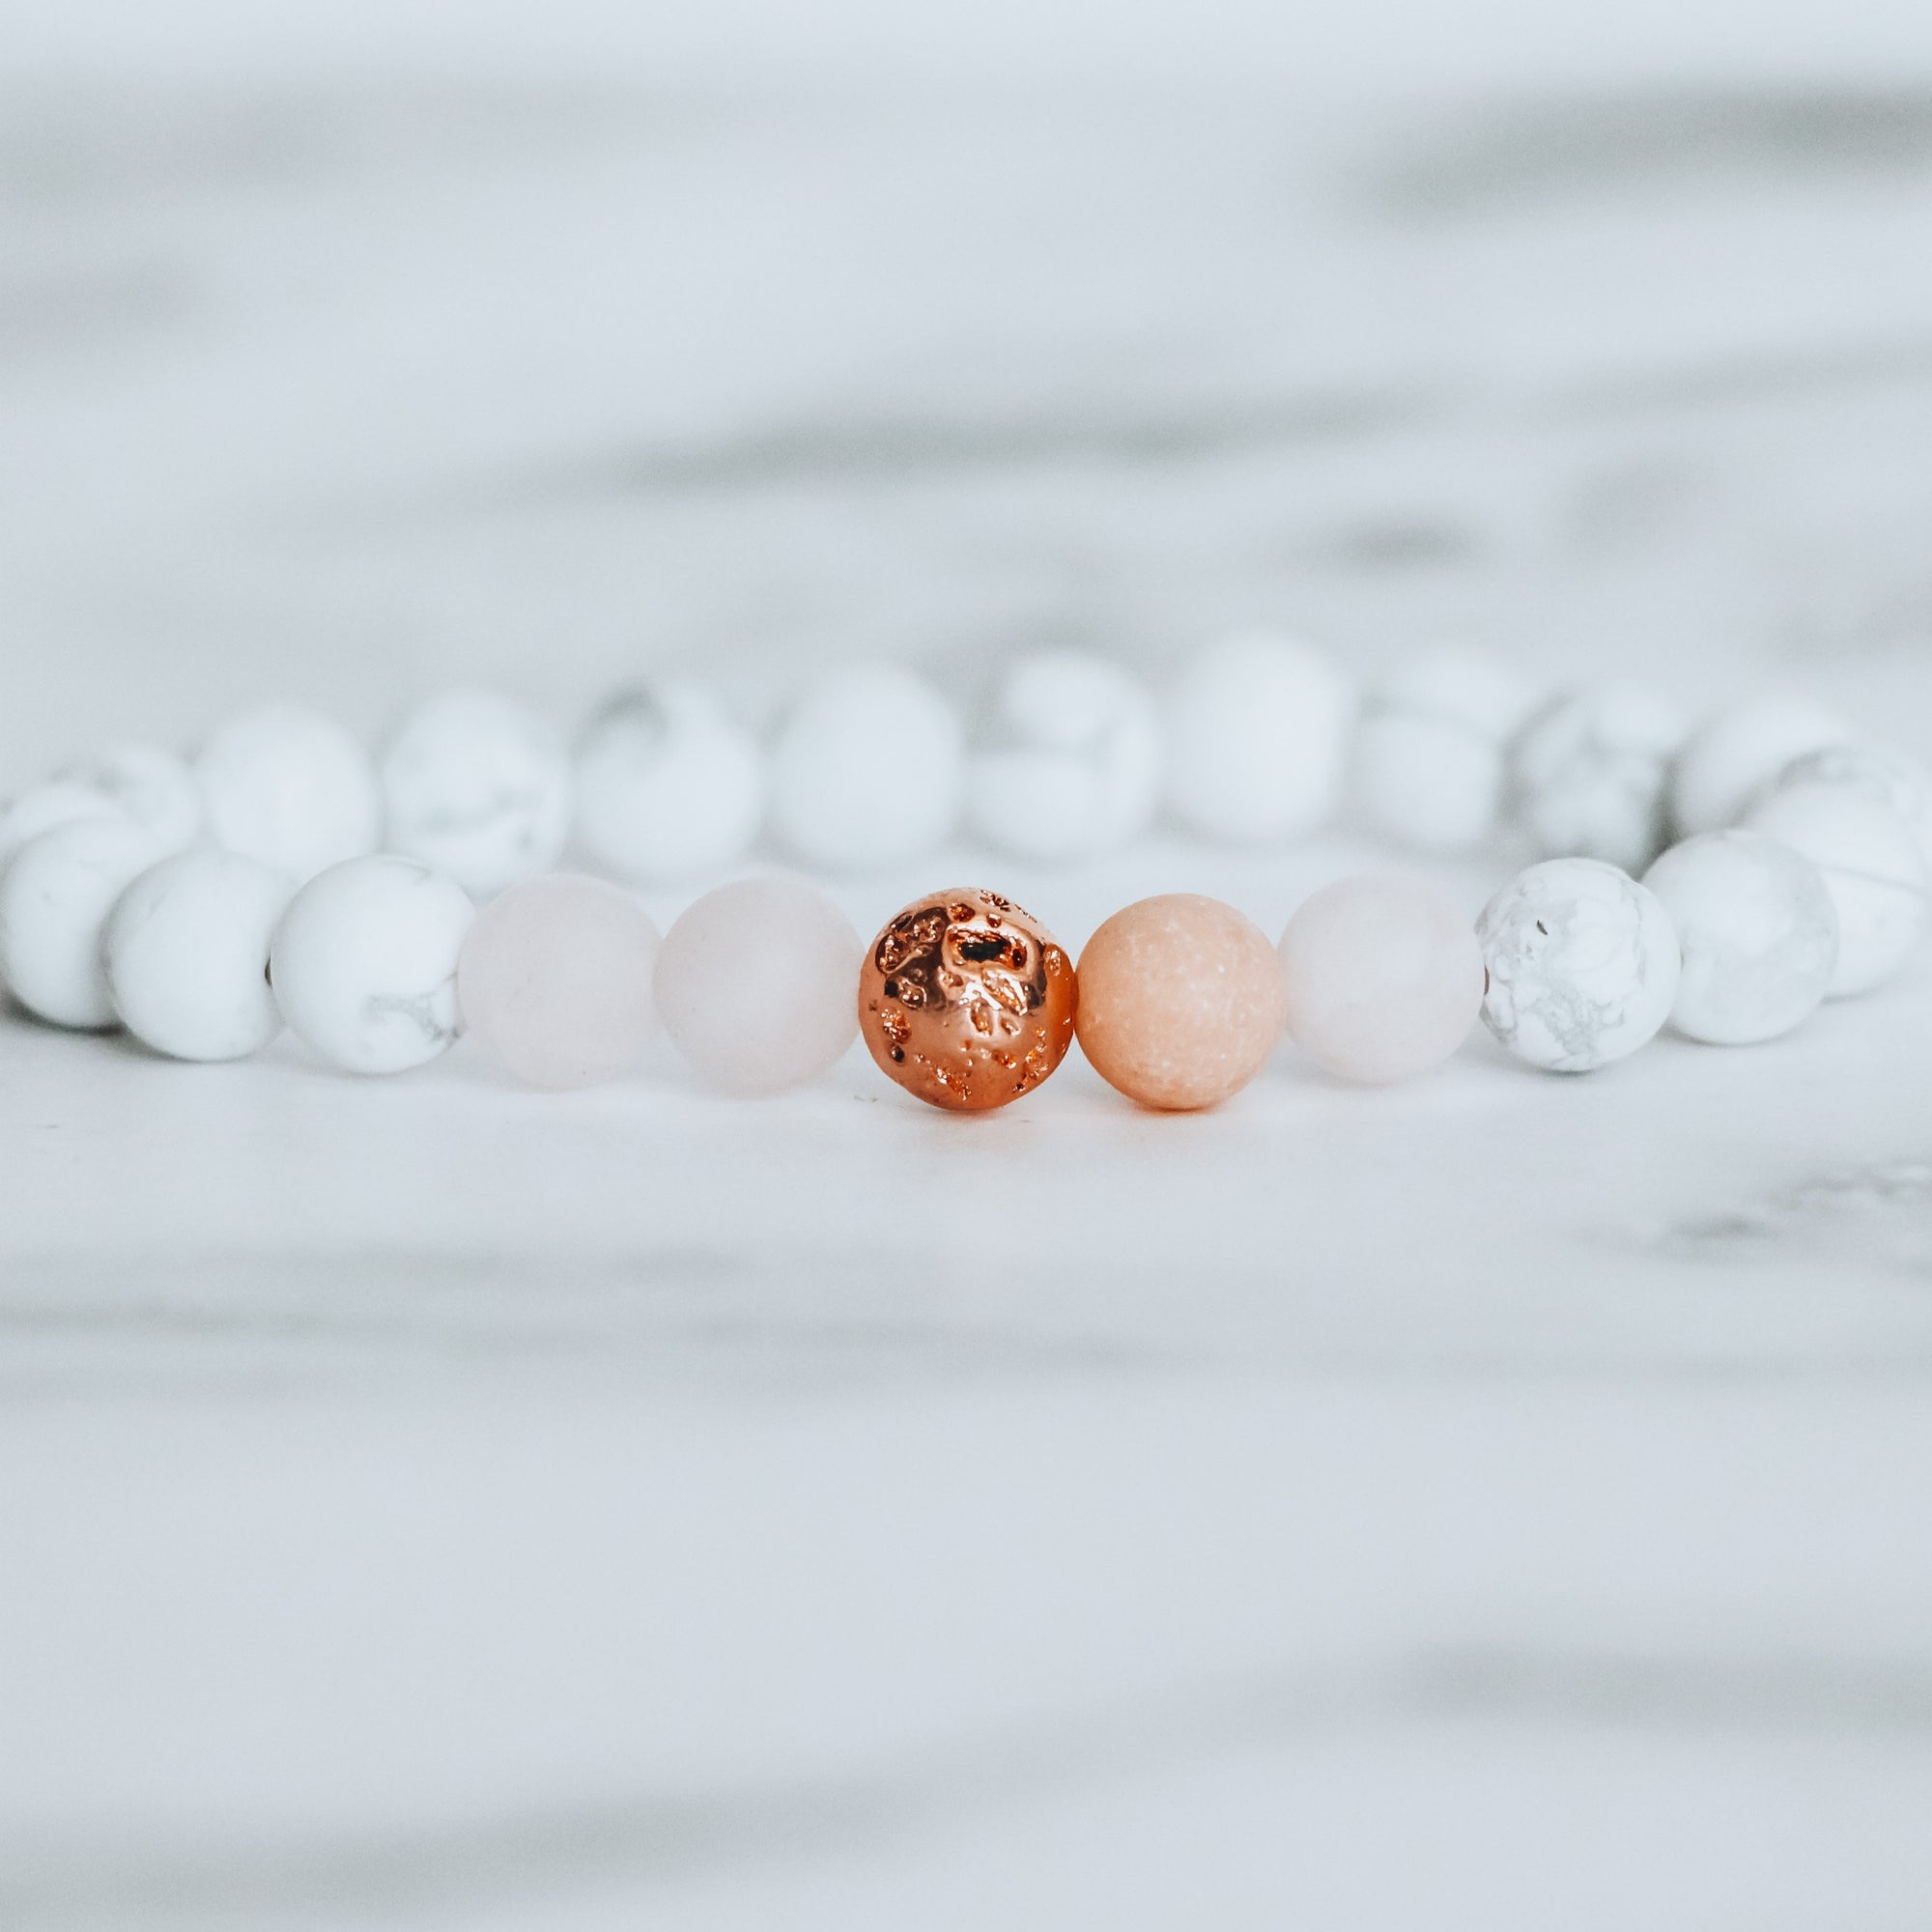 rose quartz bracelet, white howlite bracelet, rose quartz white howlite bracelet, gemstone jewelry, beaded bracelets, beaded jewelry, stones for anxiety, anxiety bracelet, self love bracelet